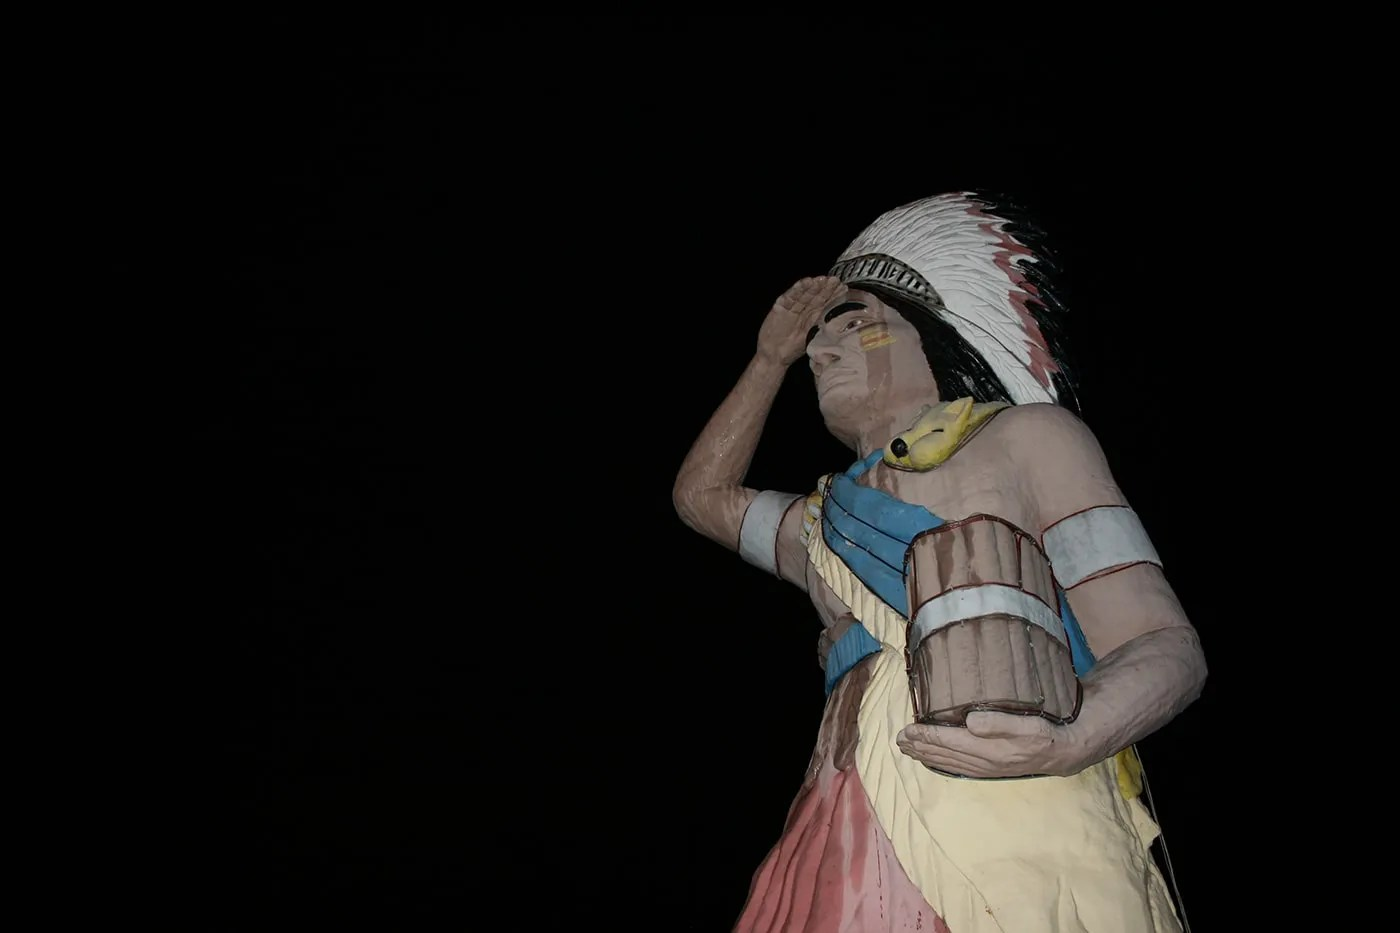 Giant Cigar Store Indian in Oak Lawn, Illinois